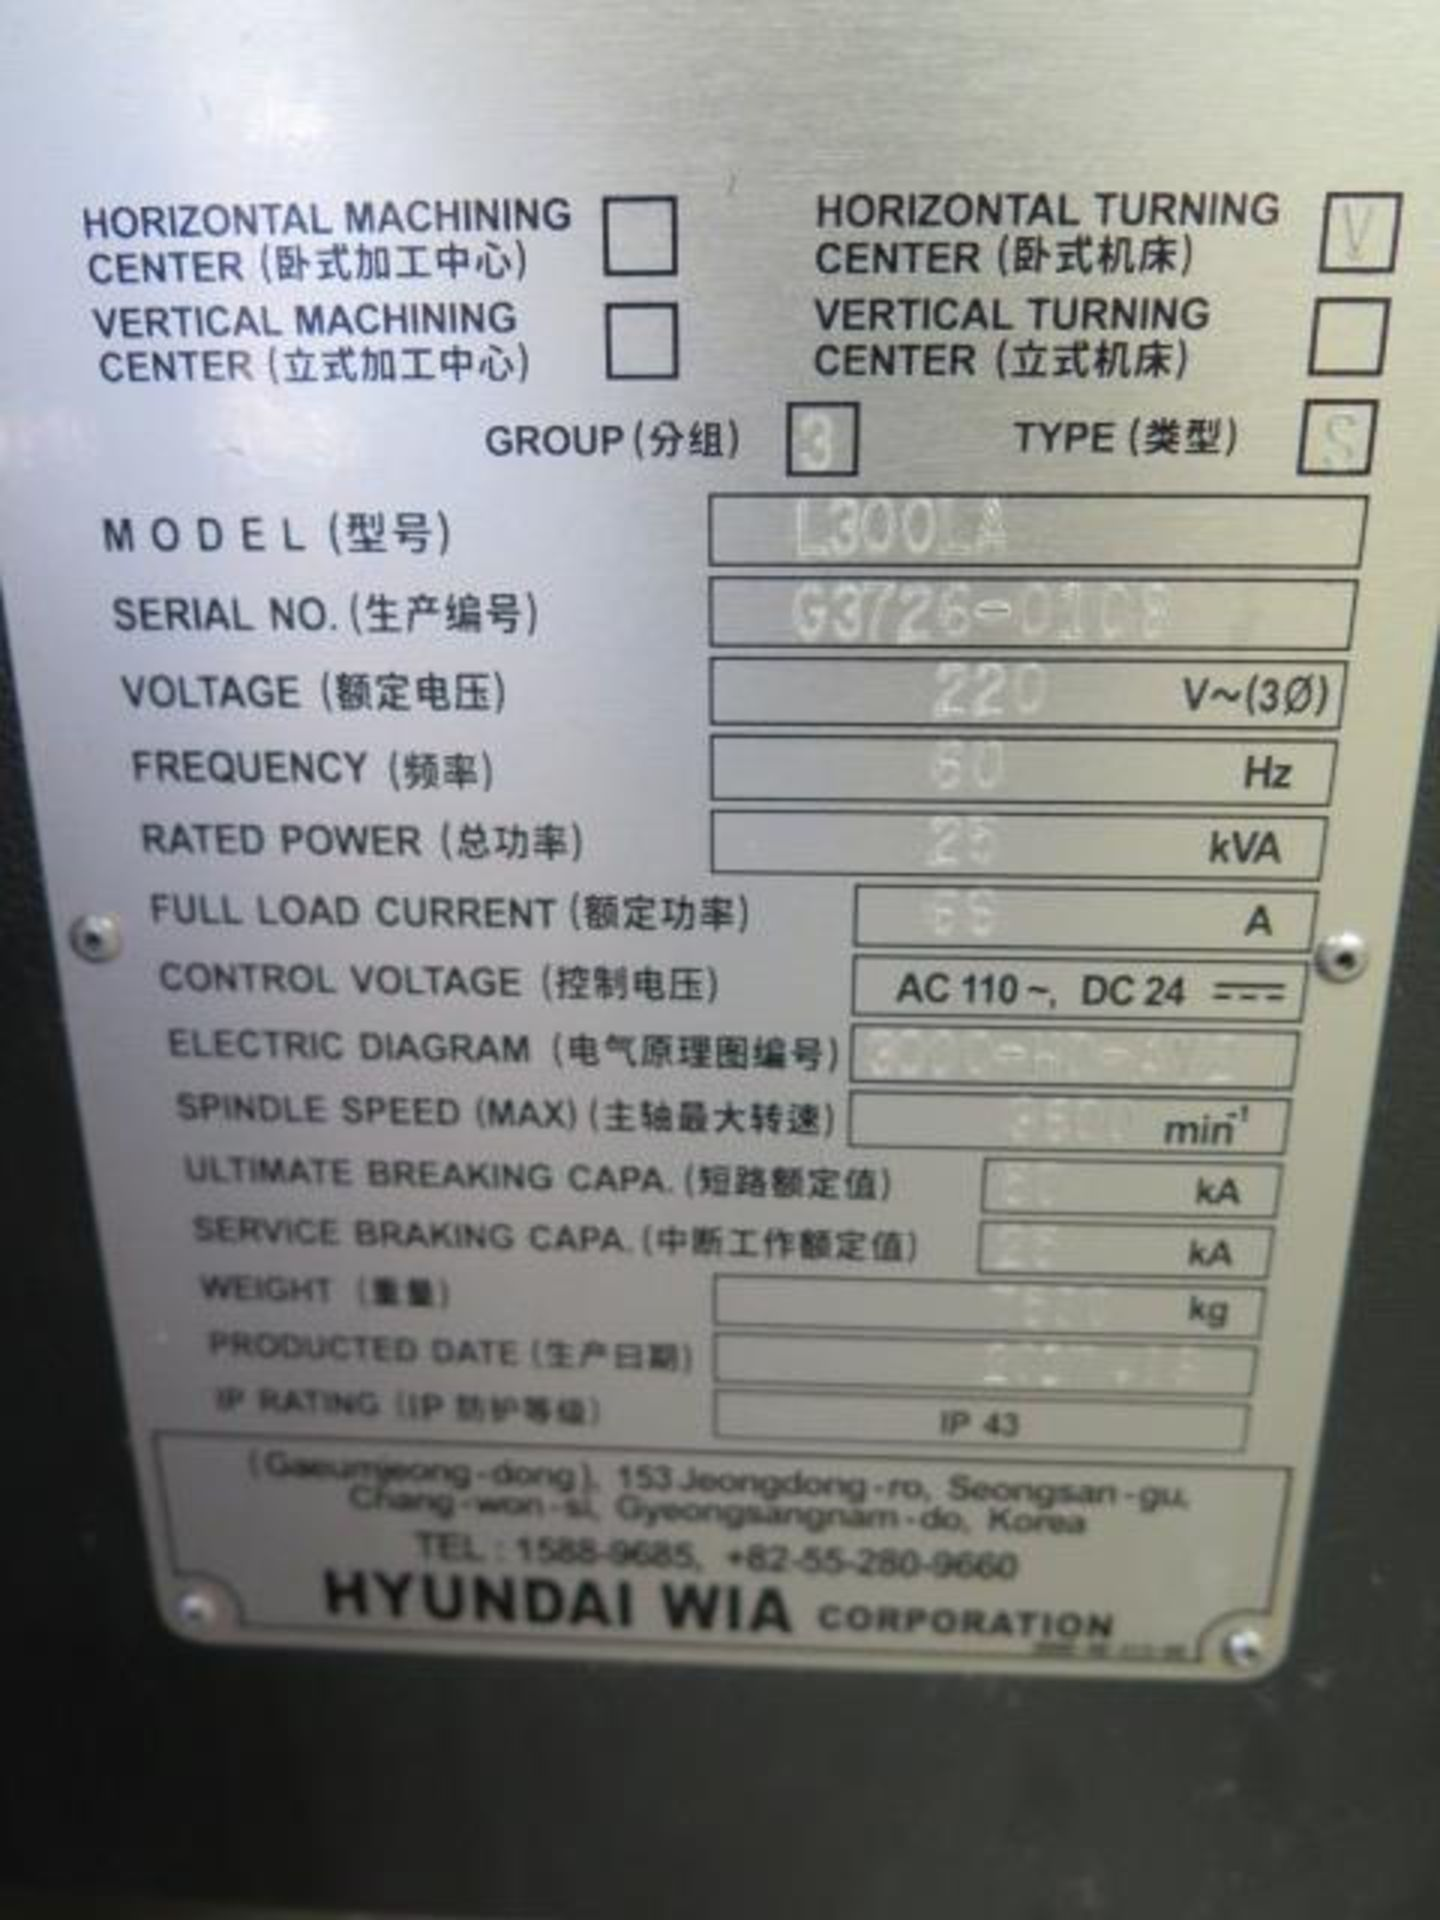 2017 Hyundai WIA L300LA CNC Turning Center s/n G3726-0108 w/ Fanuc i-Series Controls, SOLD AS IS - Image 16 of 18